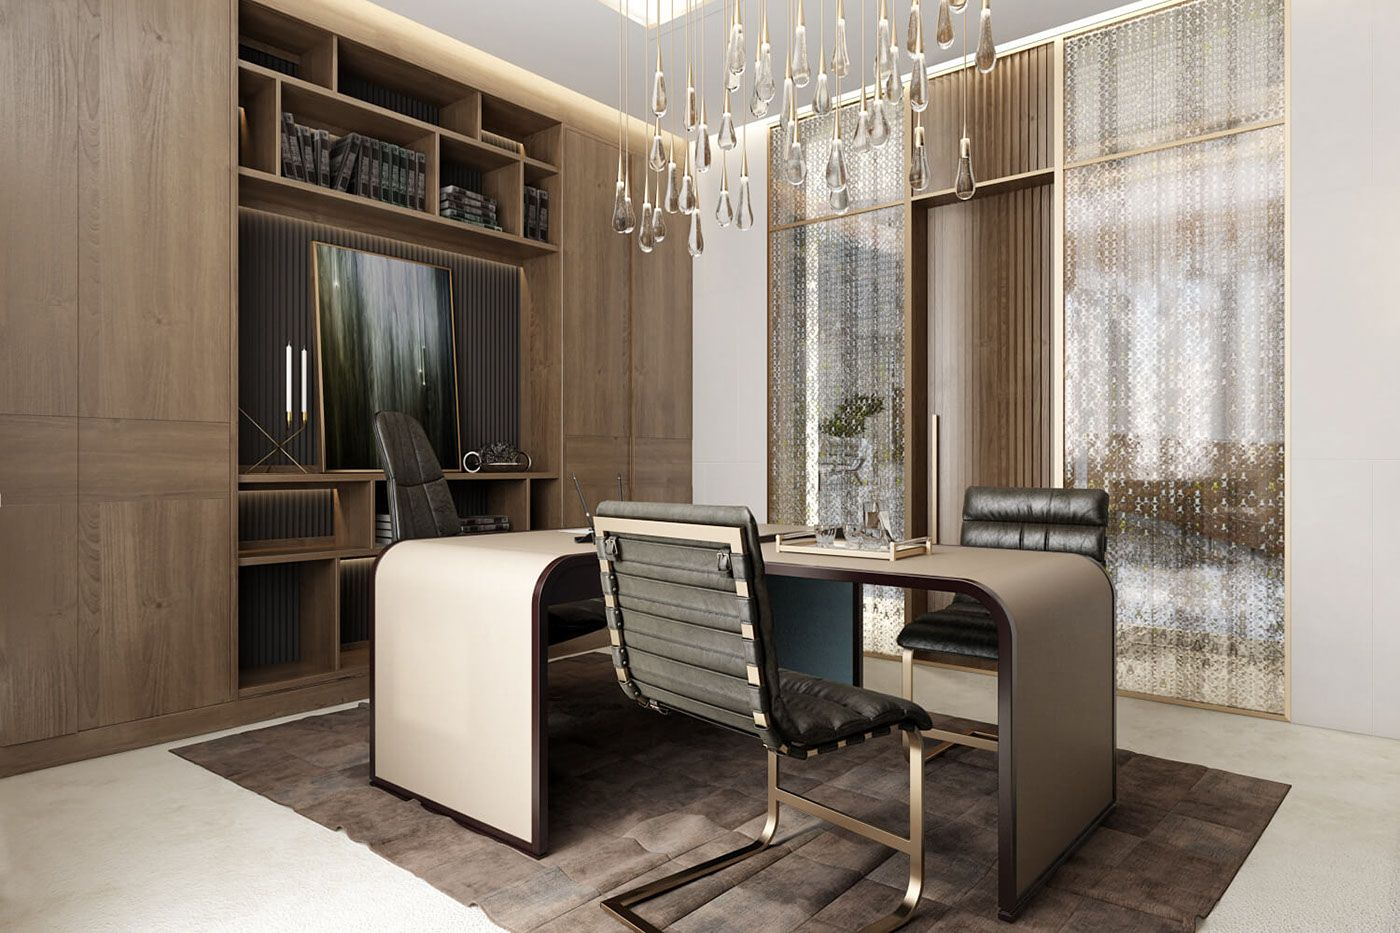 luxury office design. Here\u0027s An Architectural Rendering For A Splendid CEO Office Design. It Looks Sophisticated And Luxurious, Emanates Stability Wealth. Luxury Design